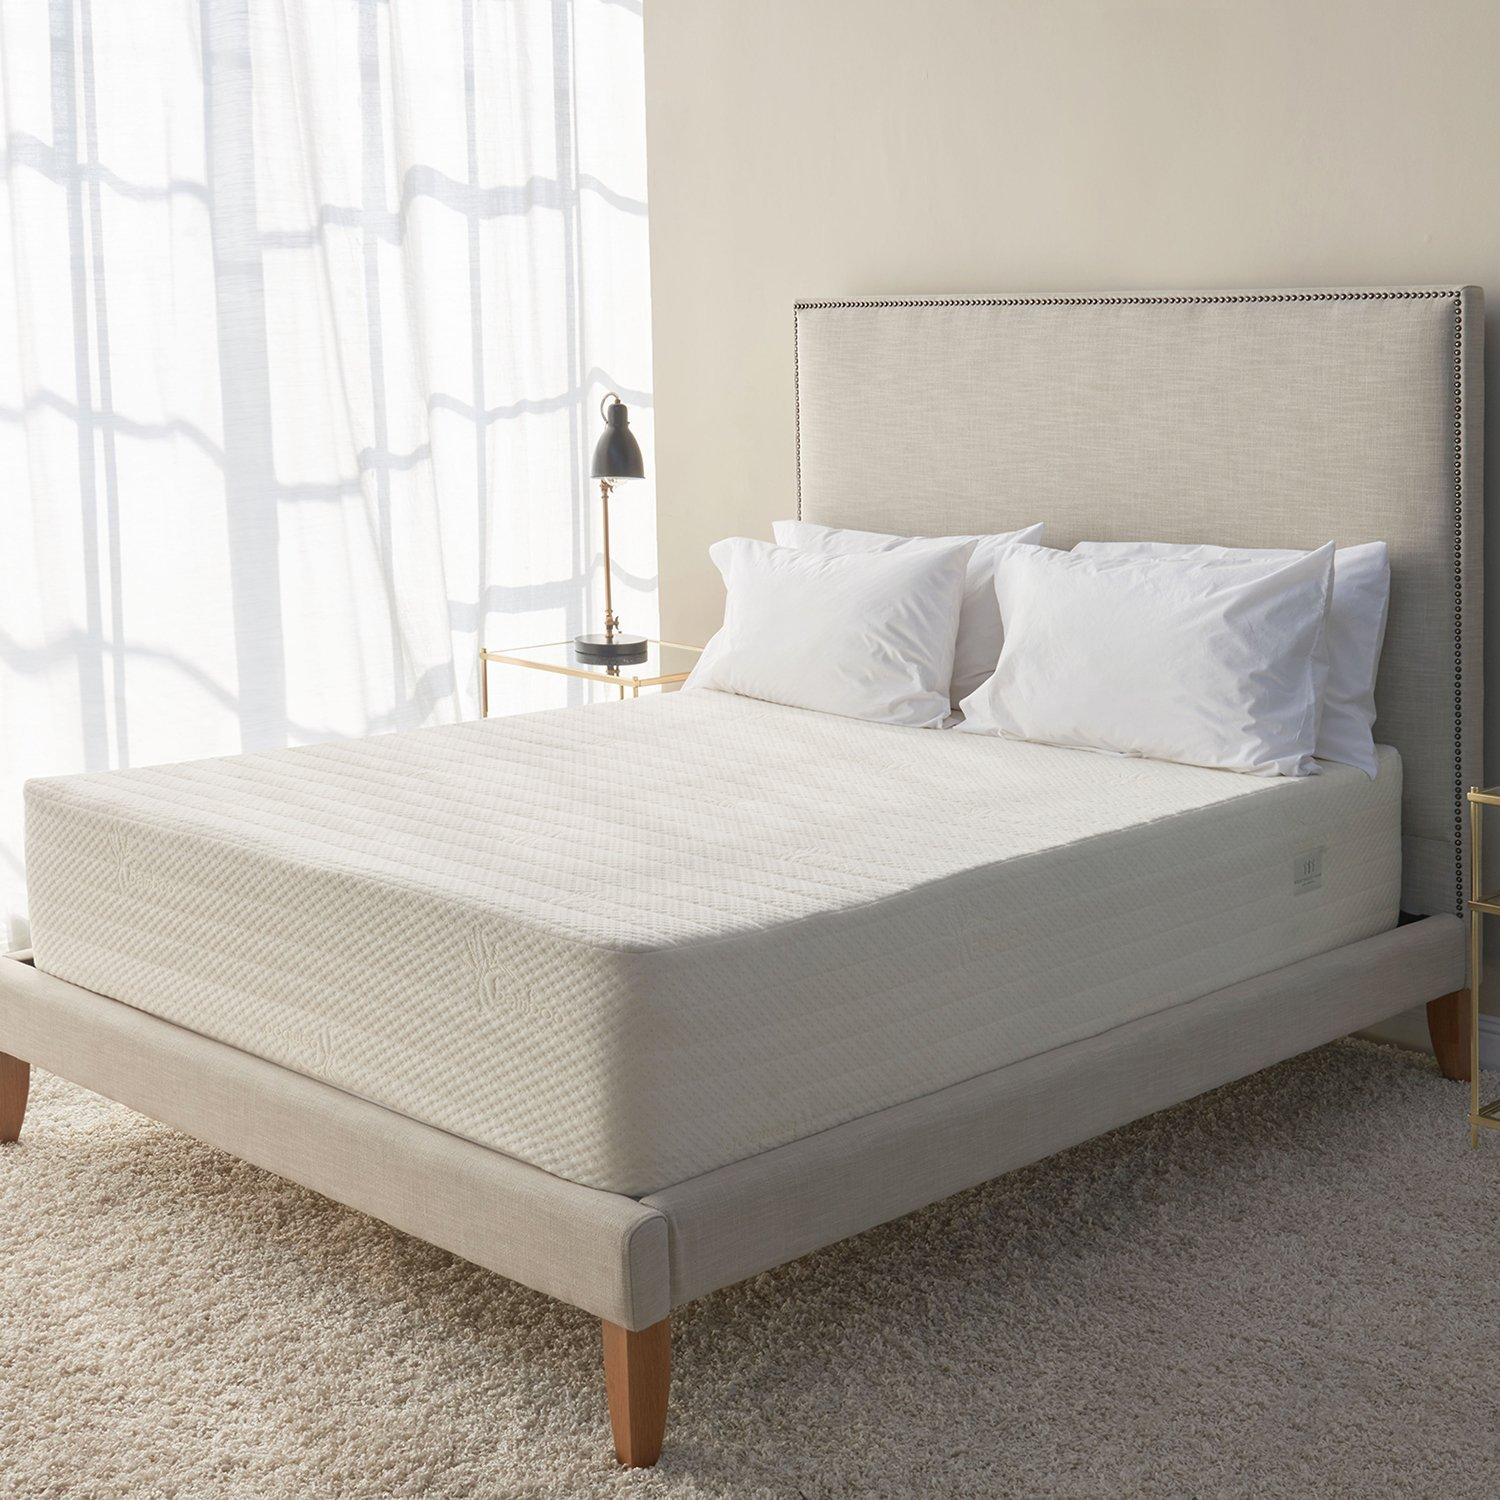 brentwood home bamboo gel memory foam mattress - Best Foam Mattress